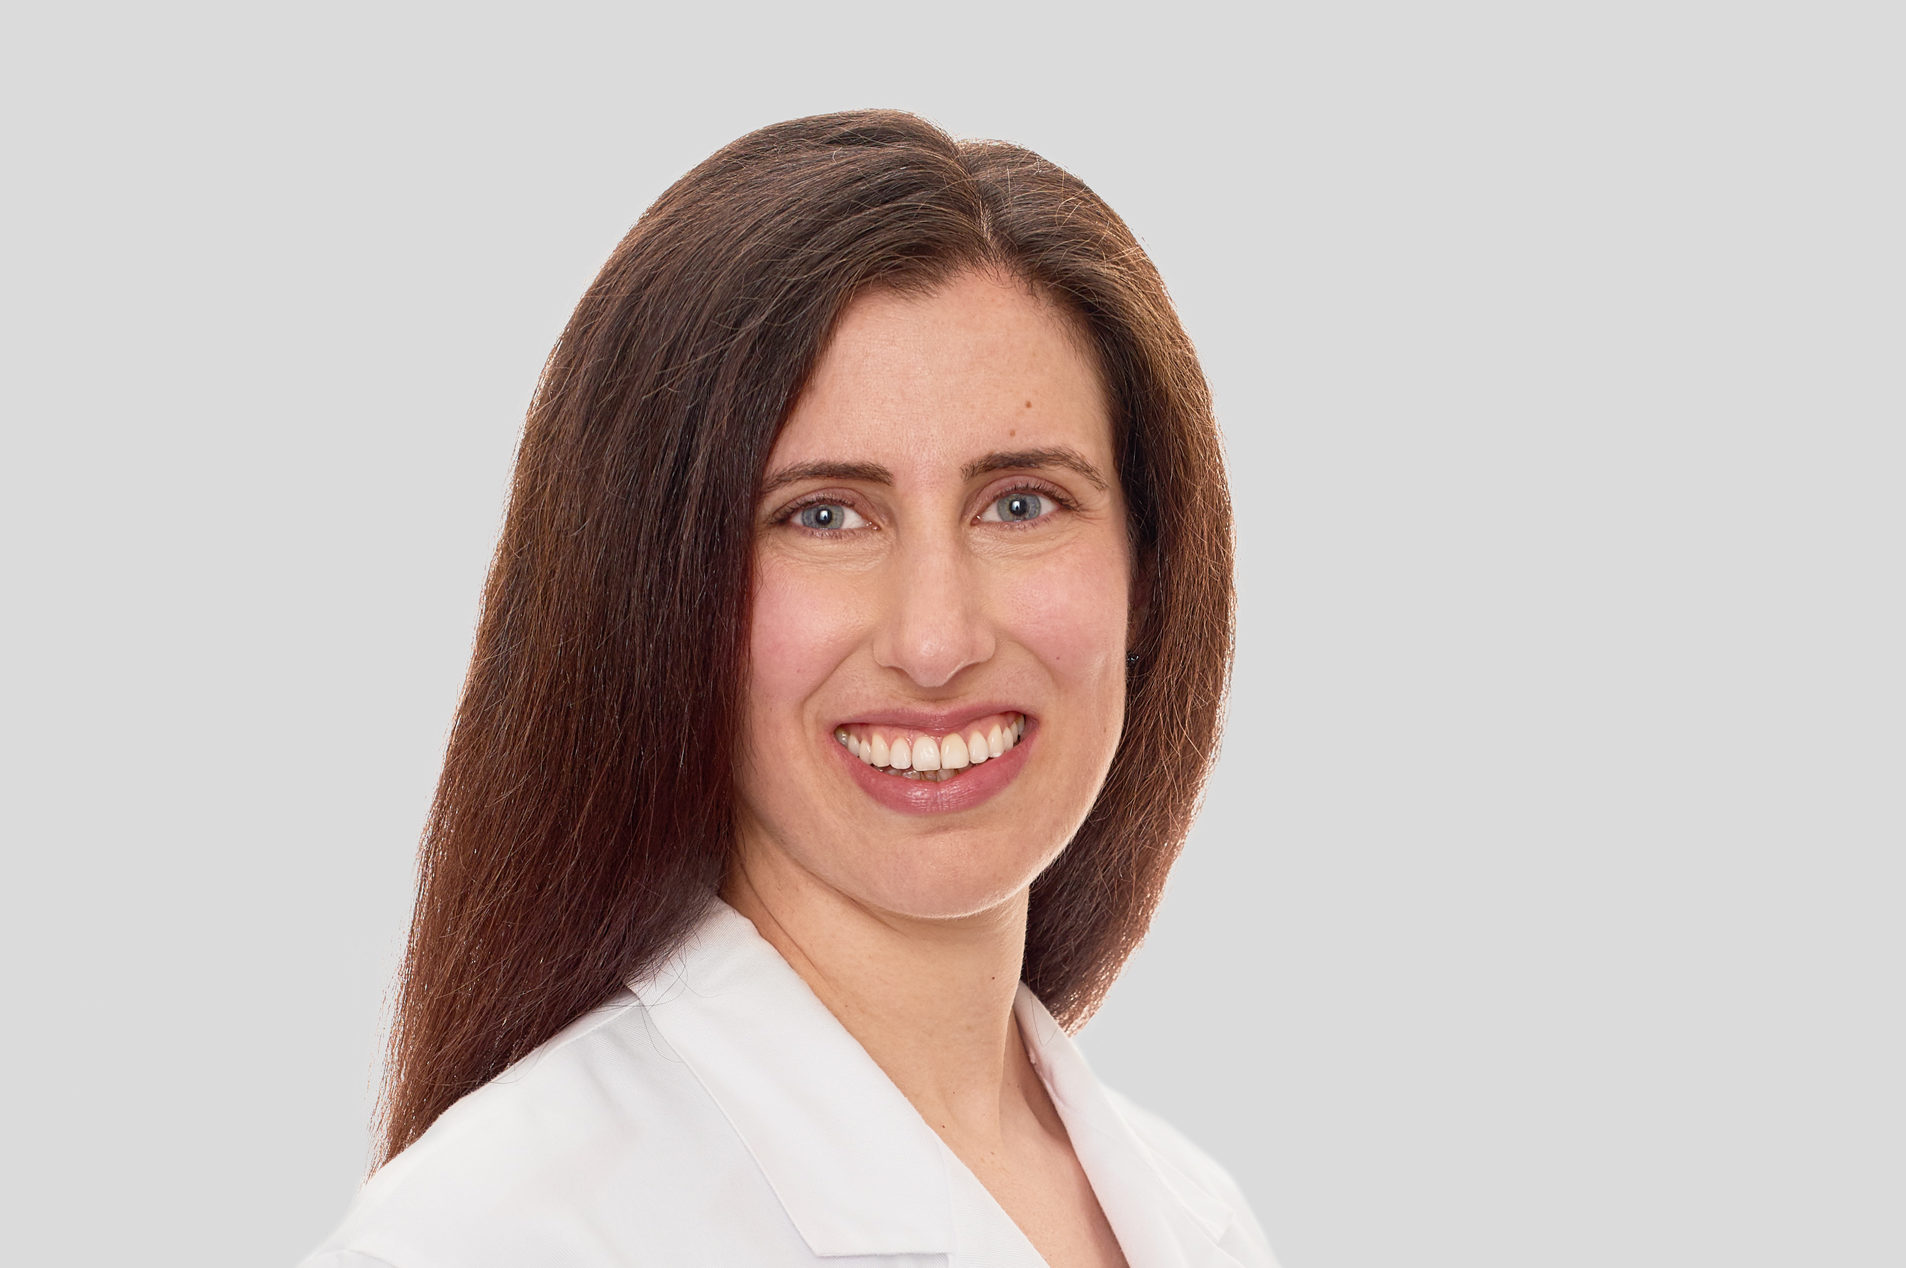 Dr. Alison Tarbell of the Animal Medical Center in New York City